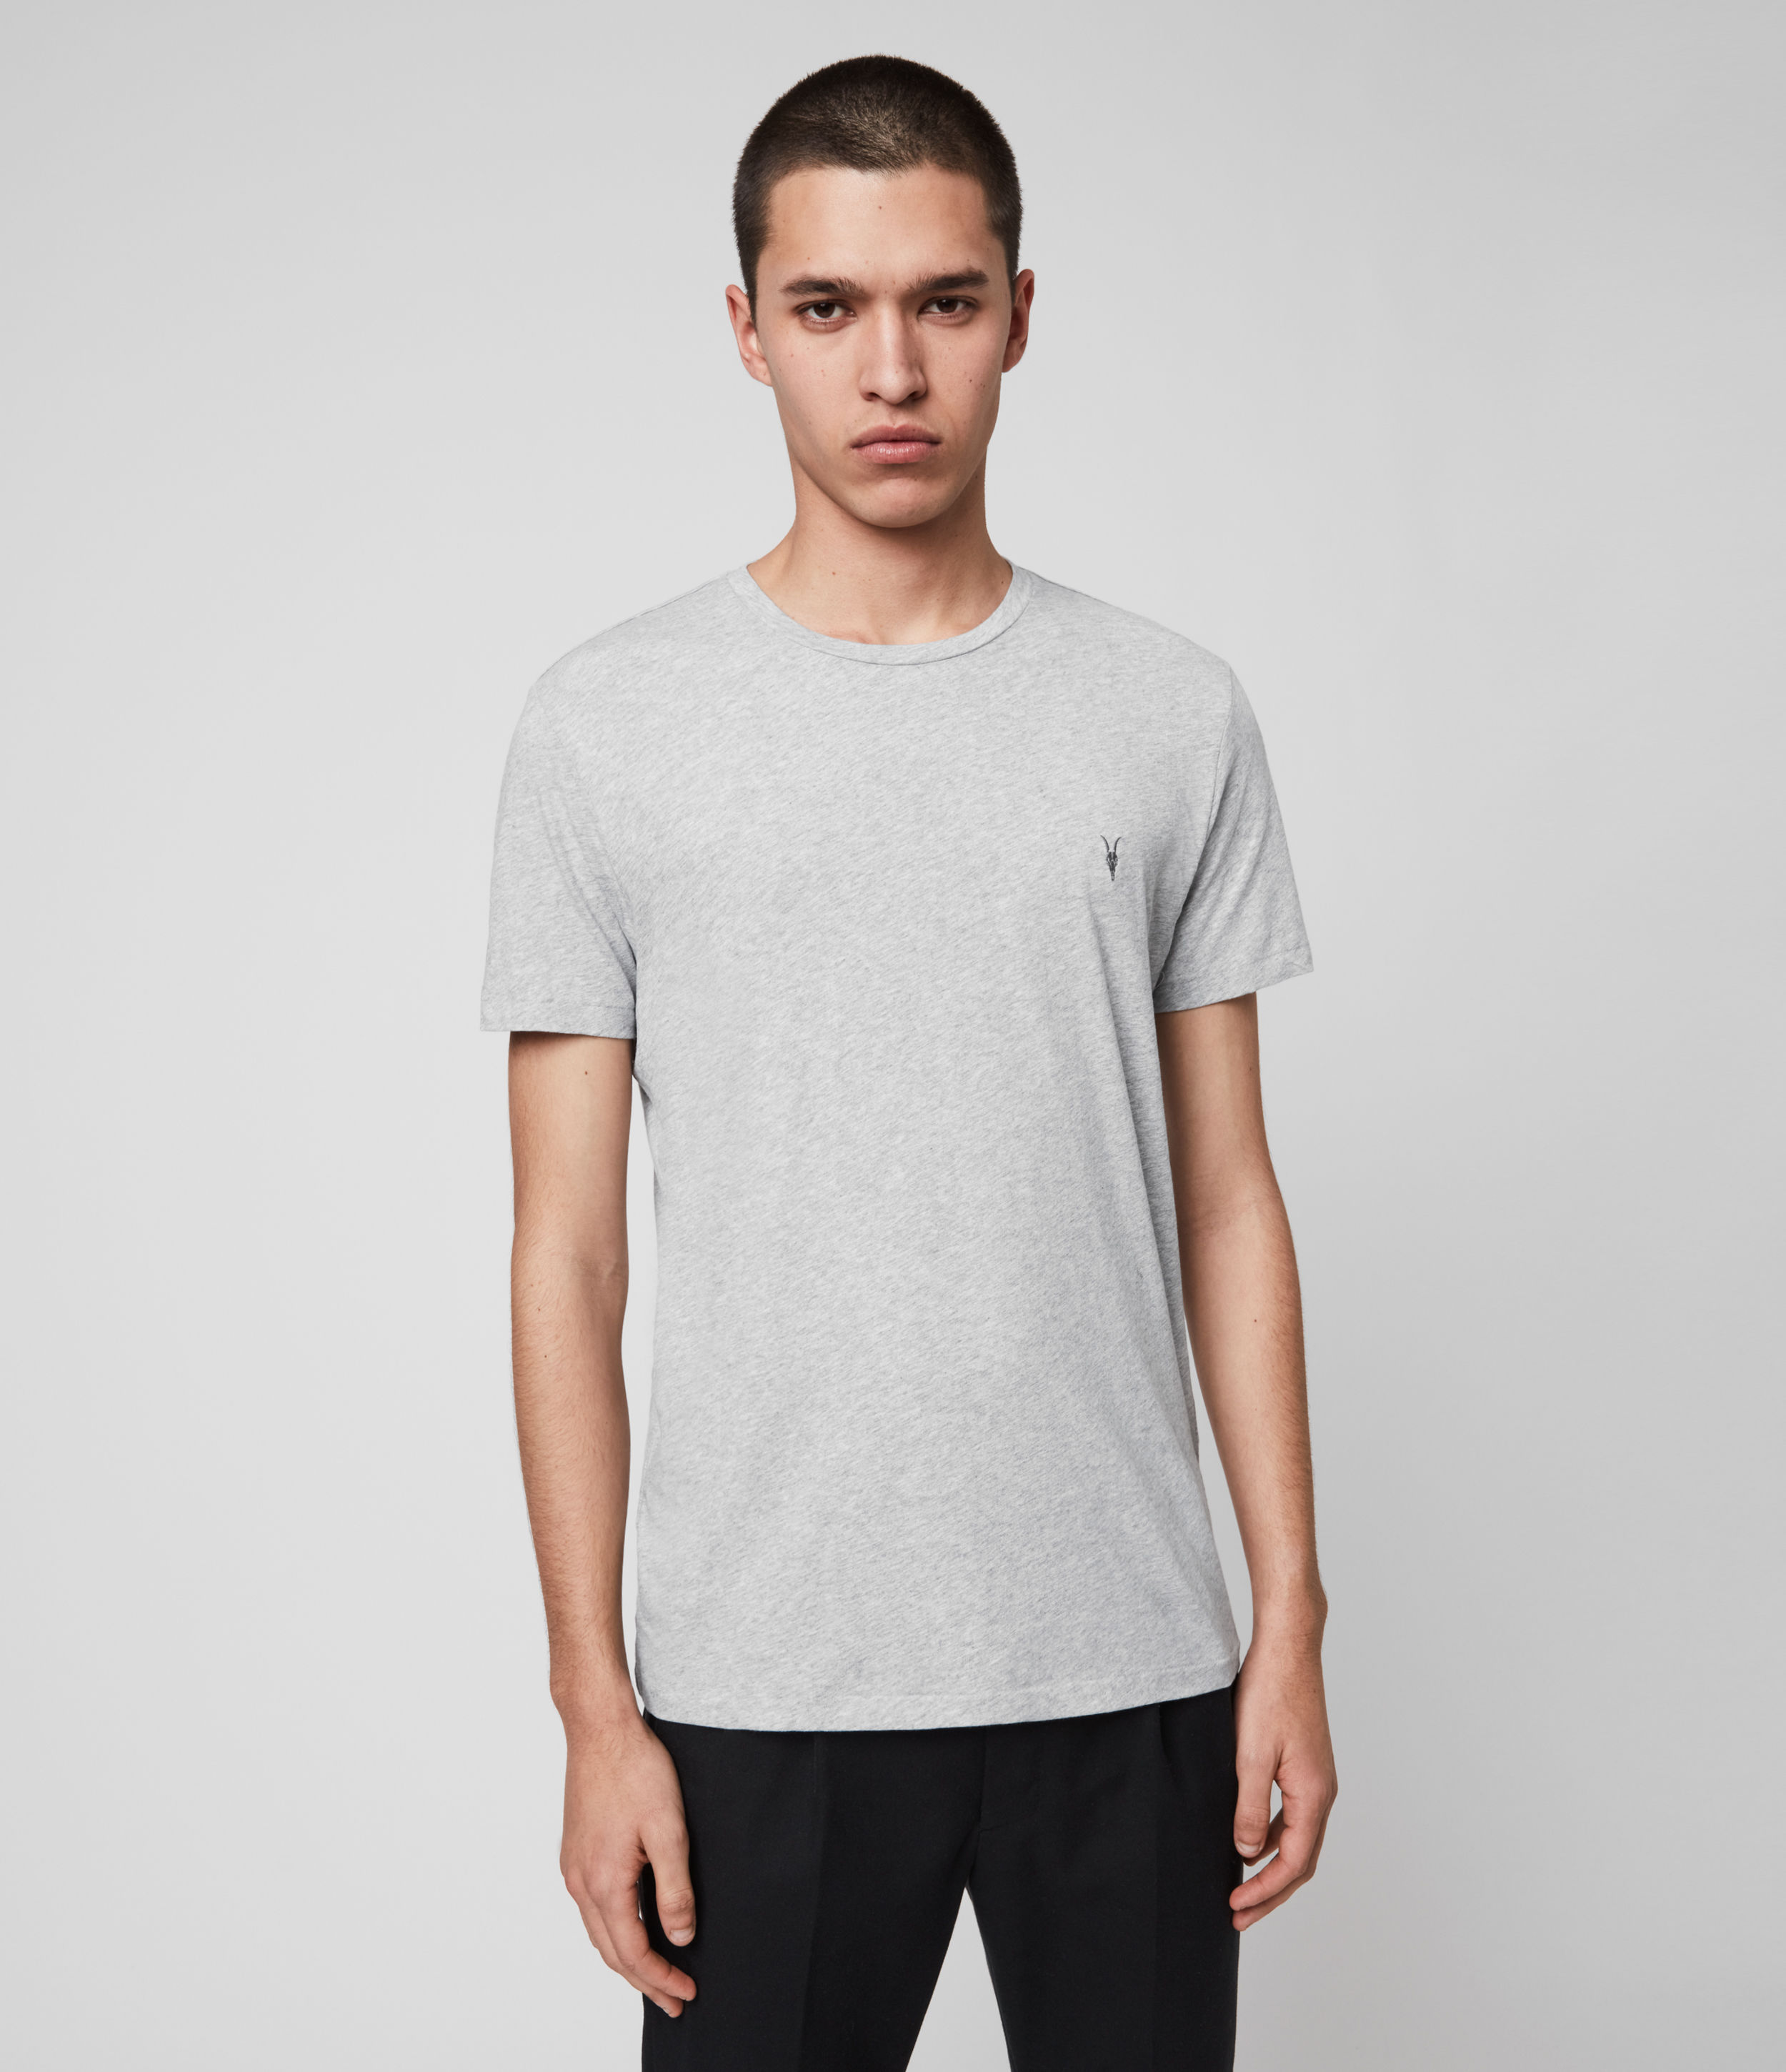 AllSaints Men's Cotton Slim Fit Pack of 3 Tonic Crew T-Shirts, White, Black and Grey, Size: XL